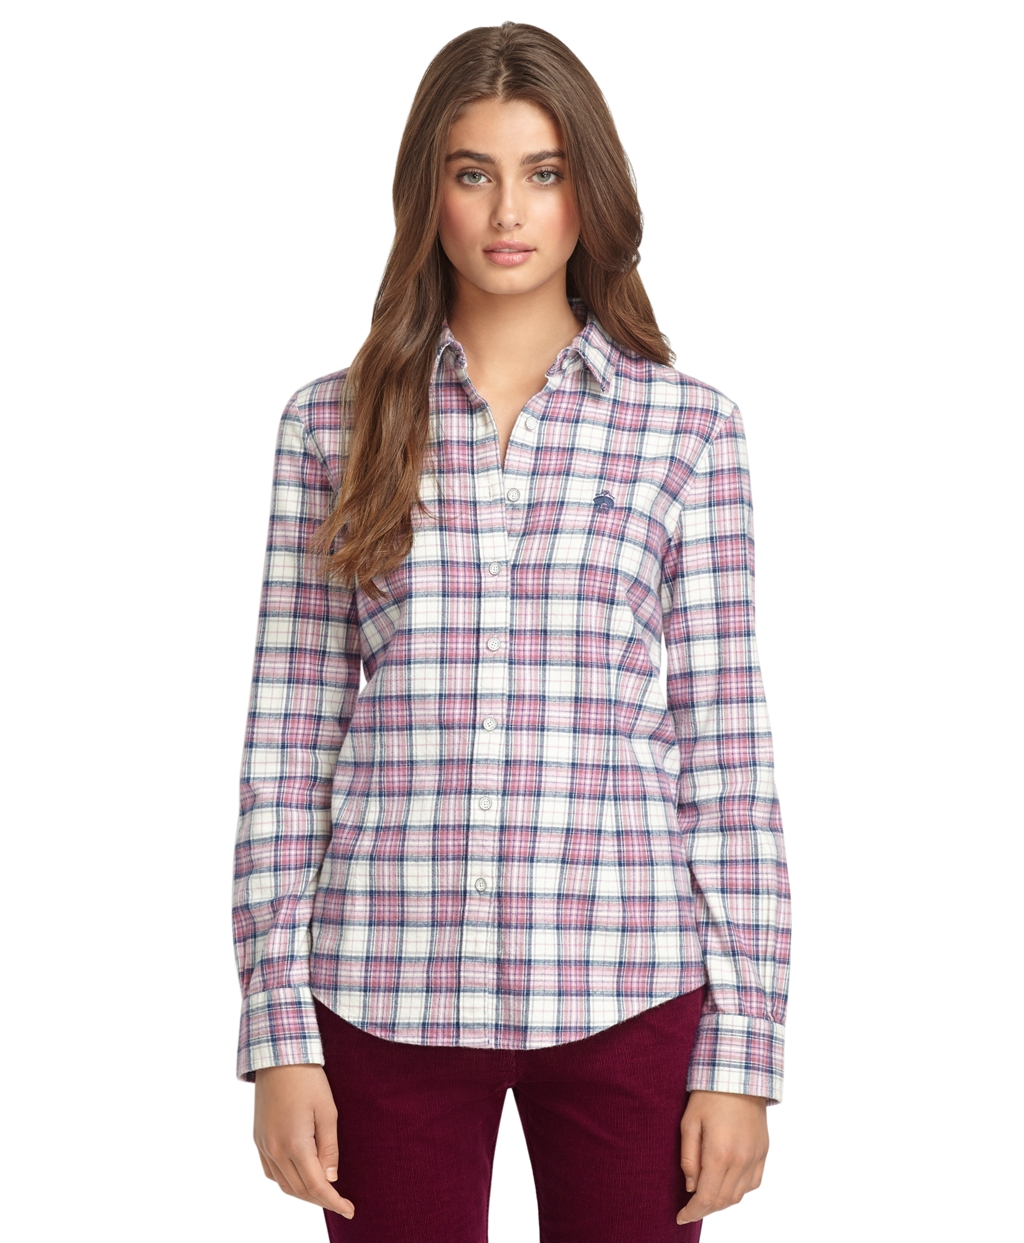 Brooks brothers plaid flannel shirt in gray pink grey lyst for Grey plaid shirt womens